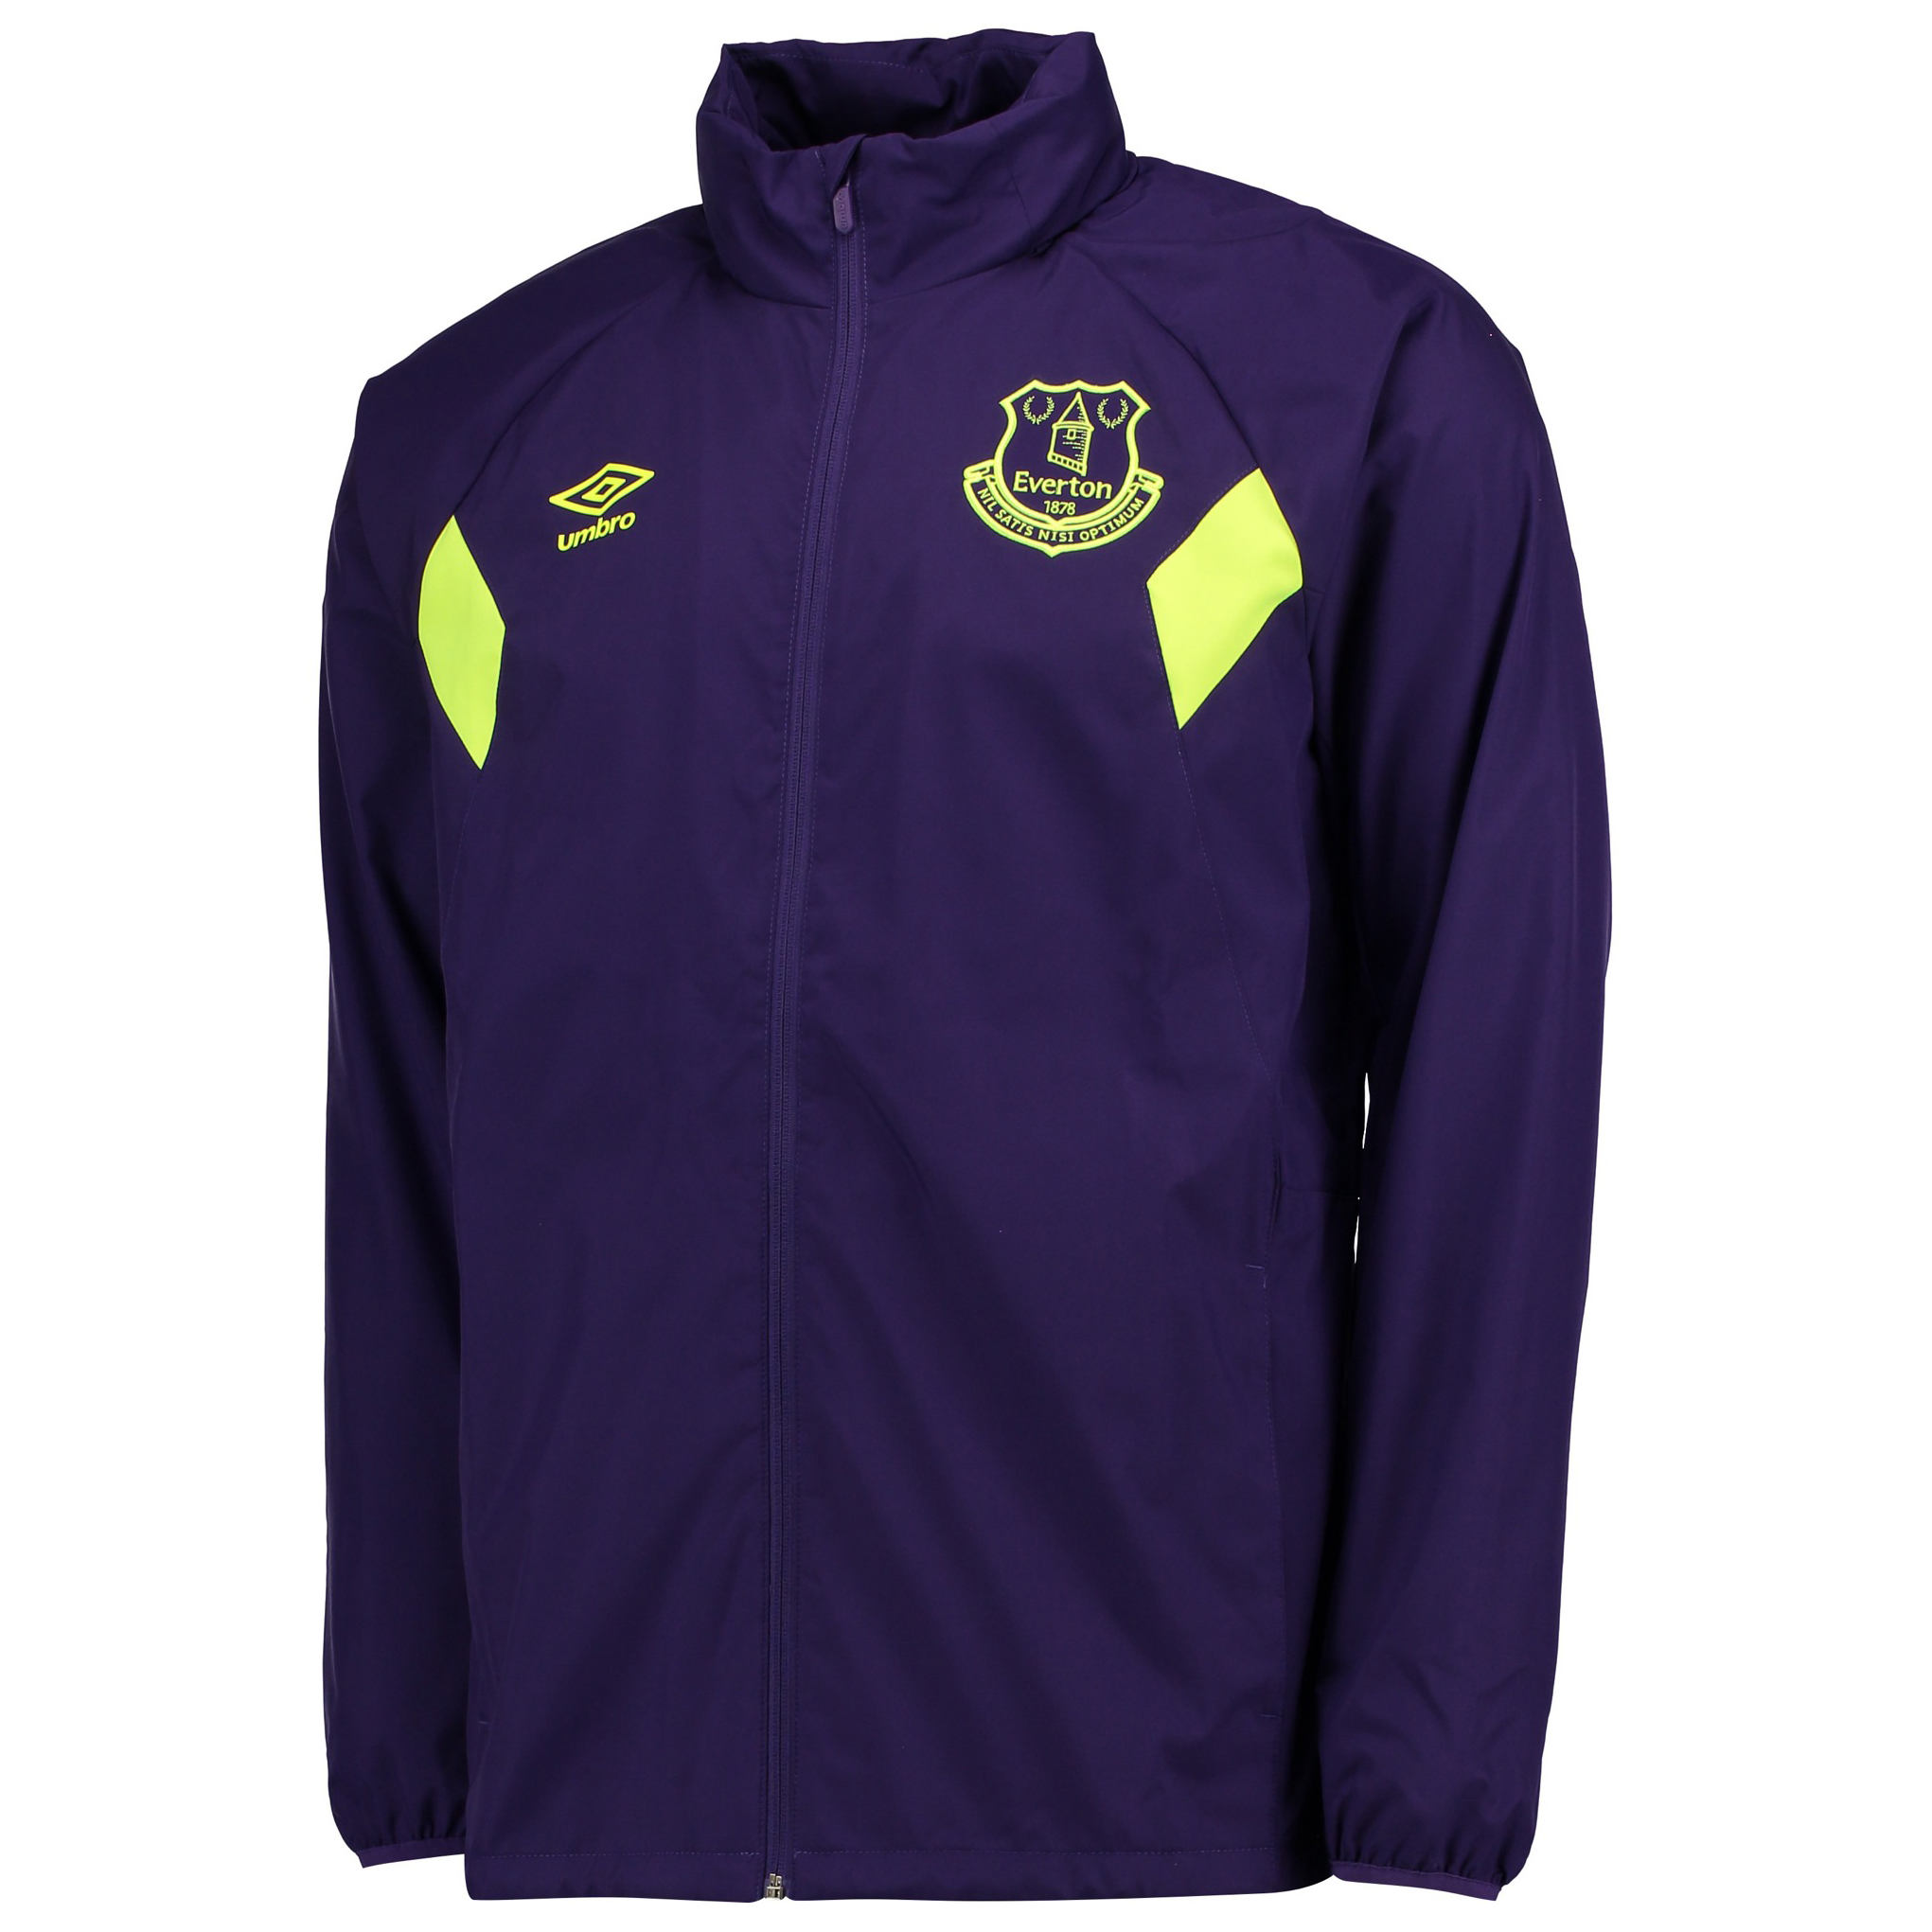 Everton Training Shower Jacket - Parachute Purple/Safety Yellow